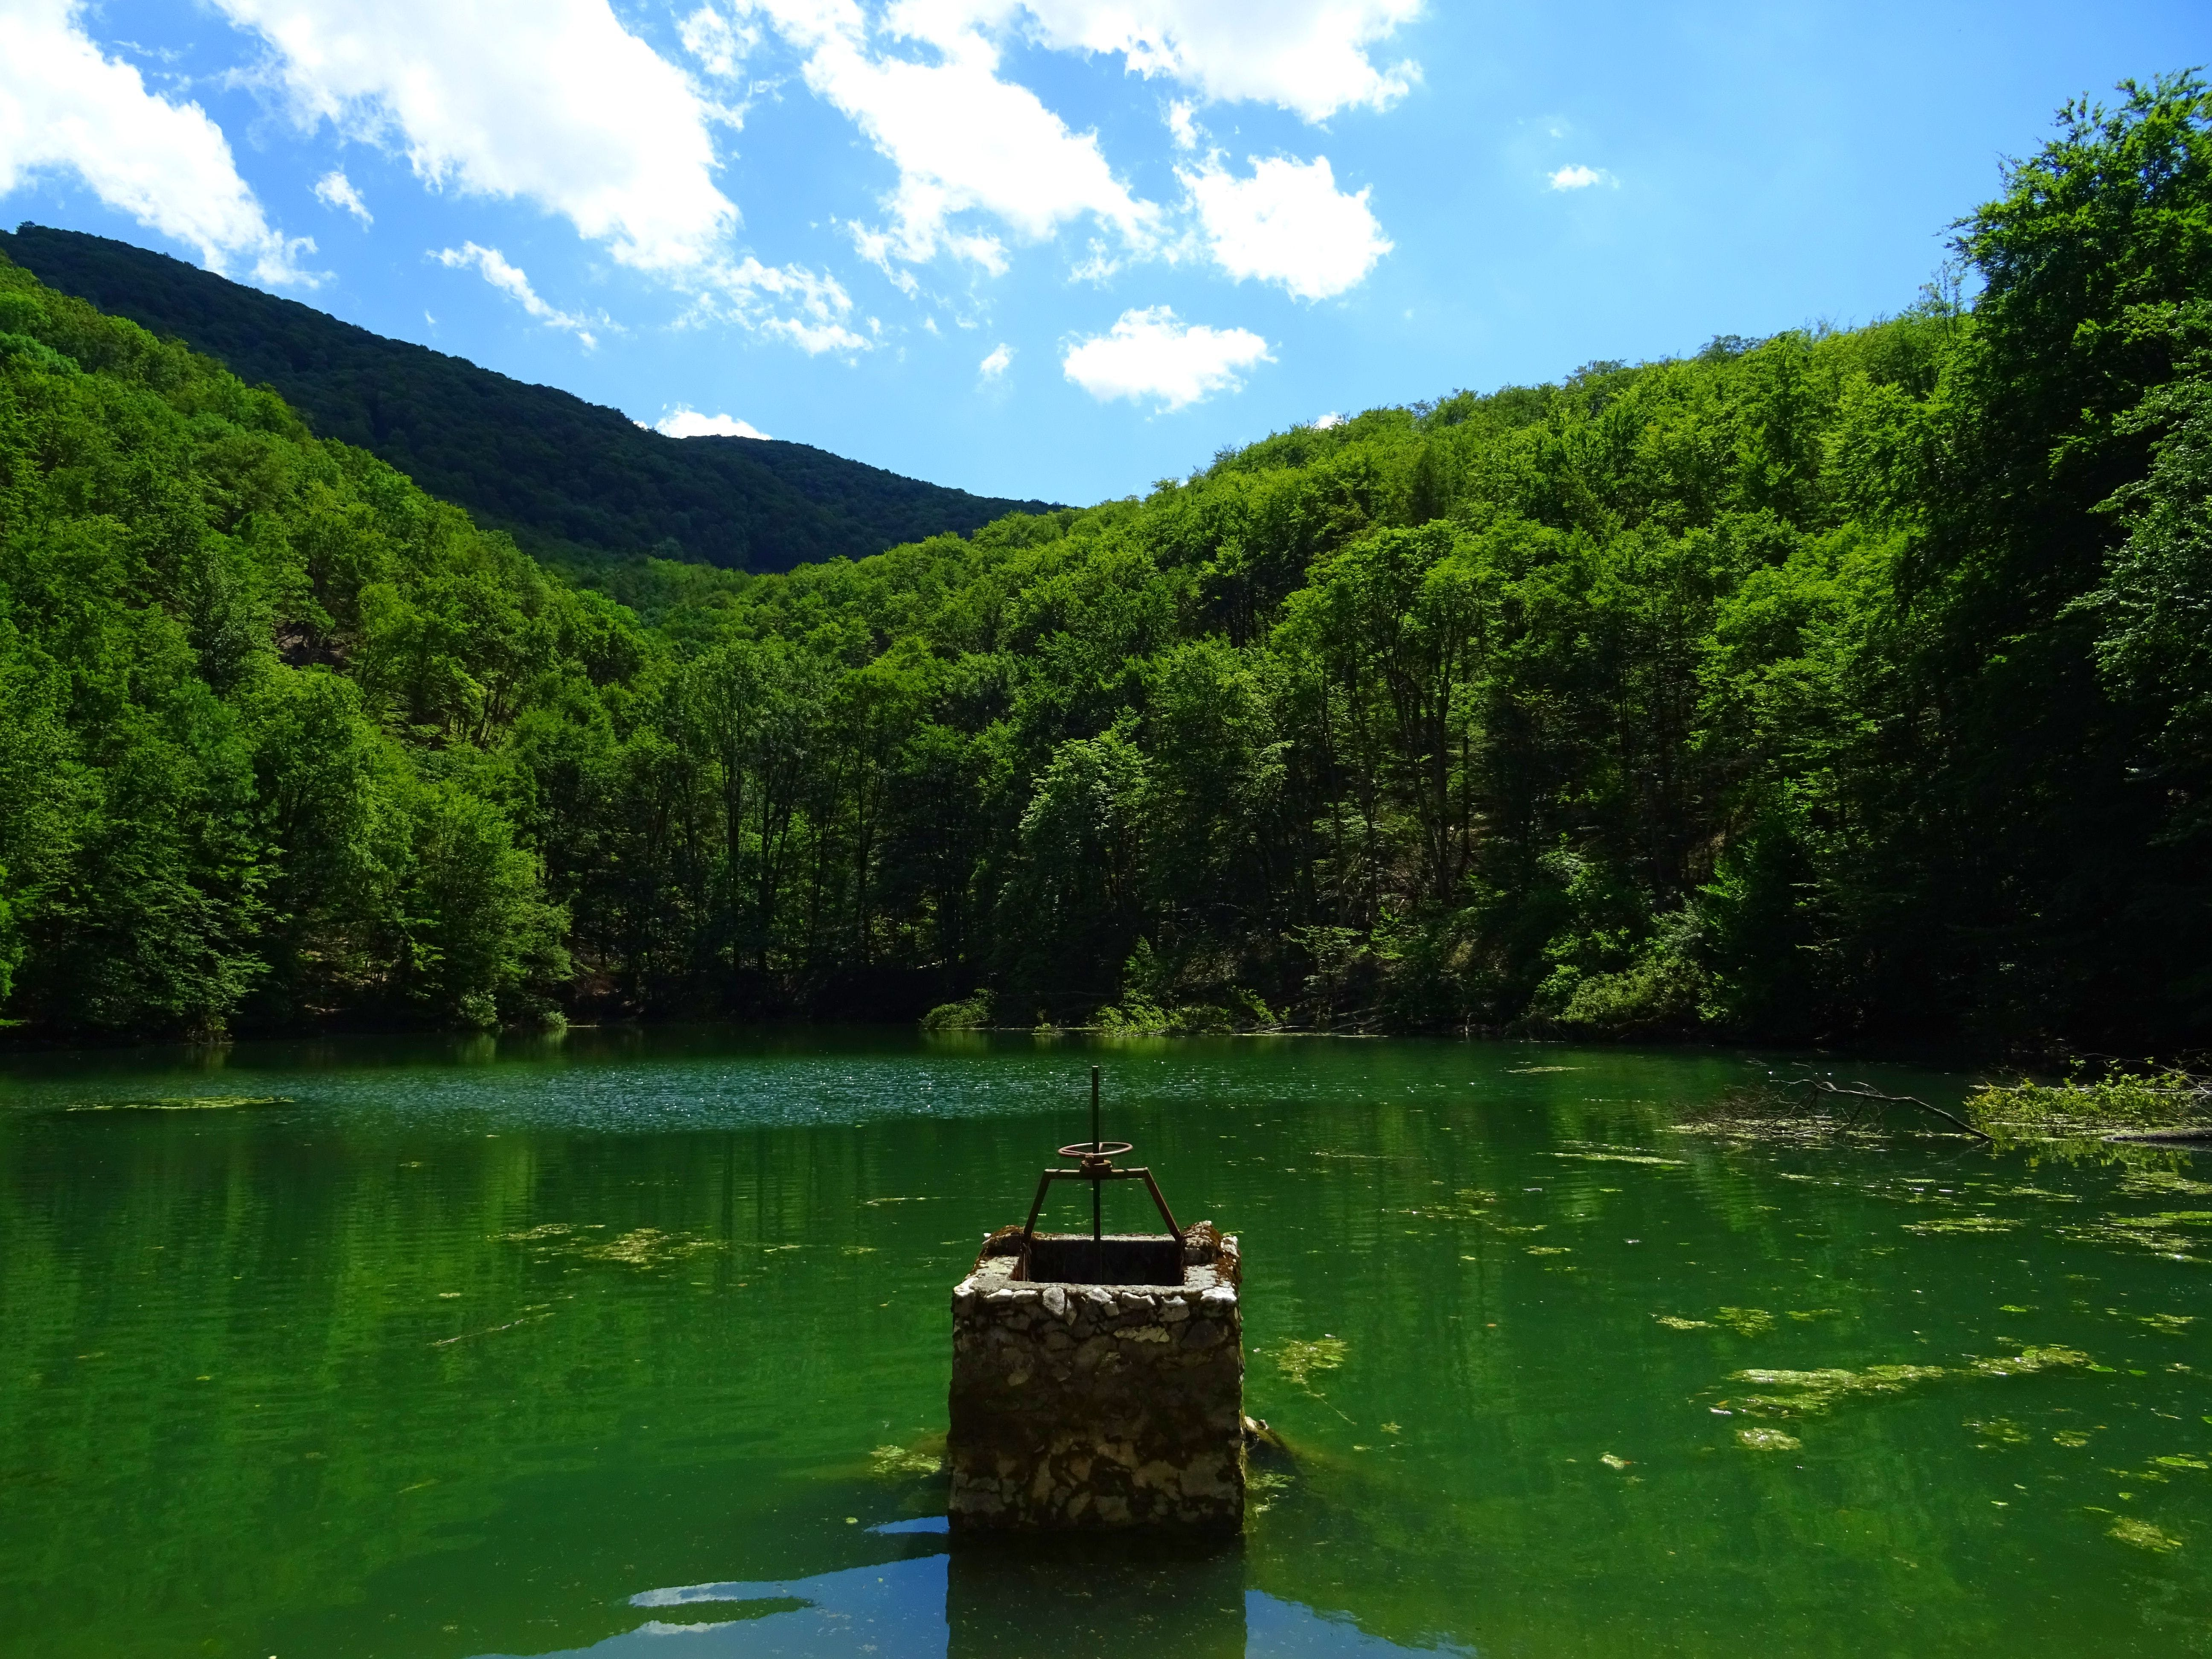 Green Body of Water Surrounded by Green Leafed Trees